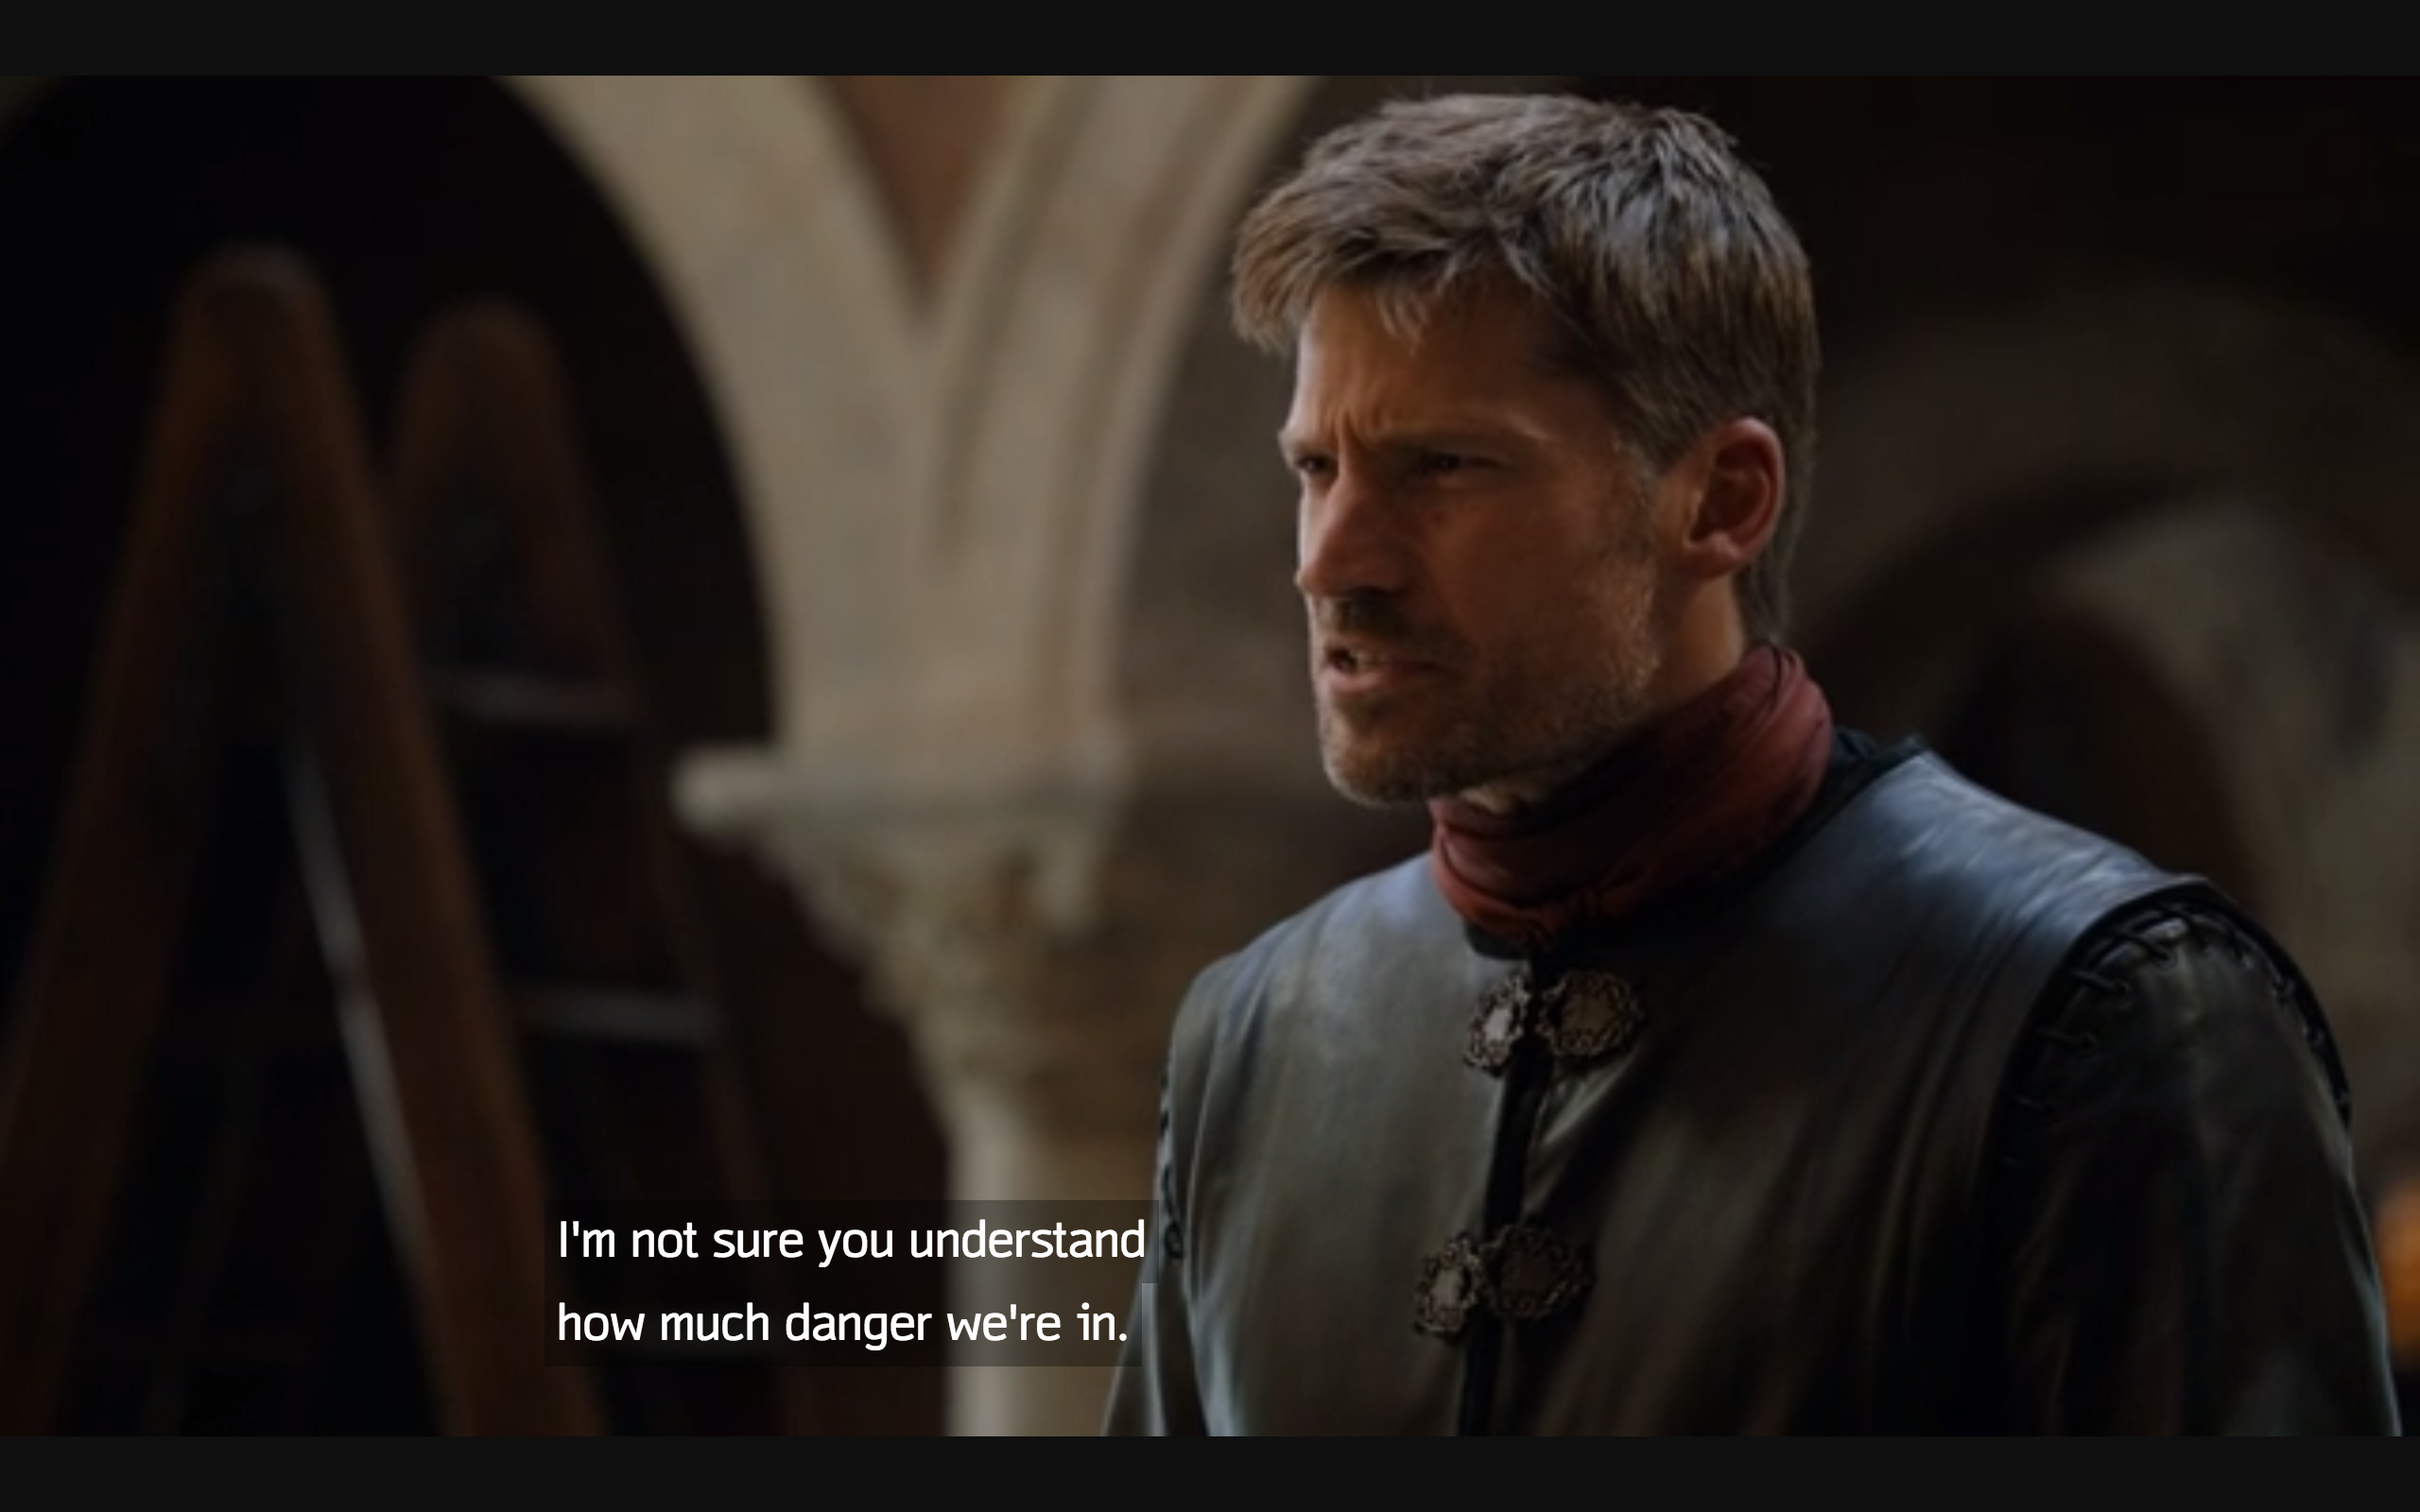 The Real Reason Behind Aryas Scene With The Lannister Soldiers hCebrcy